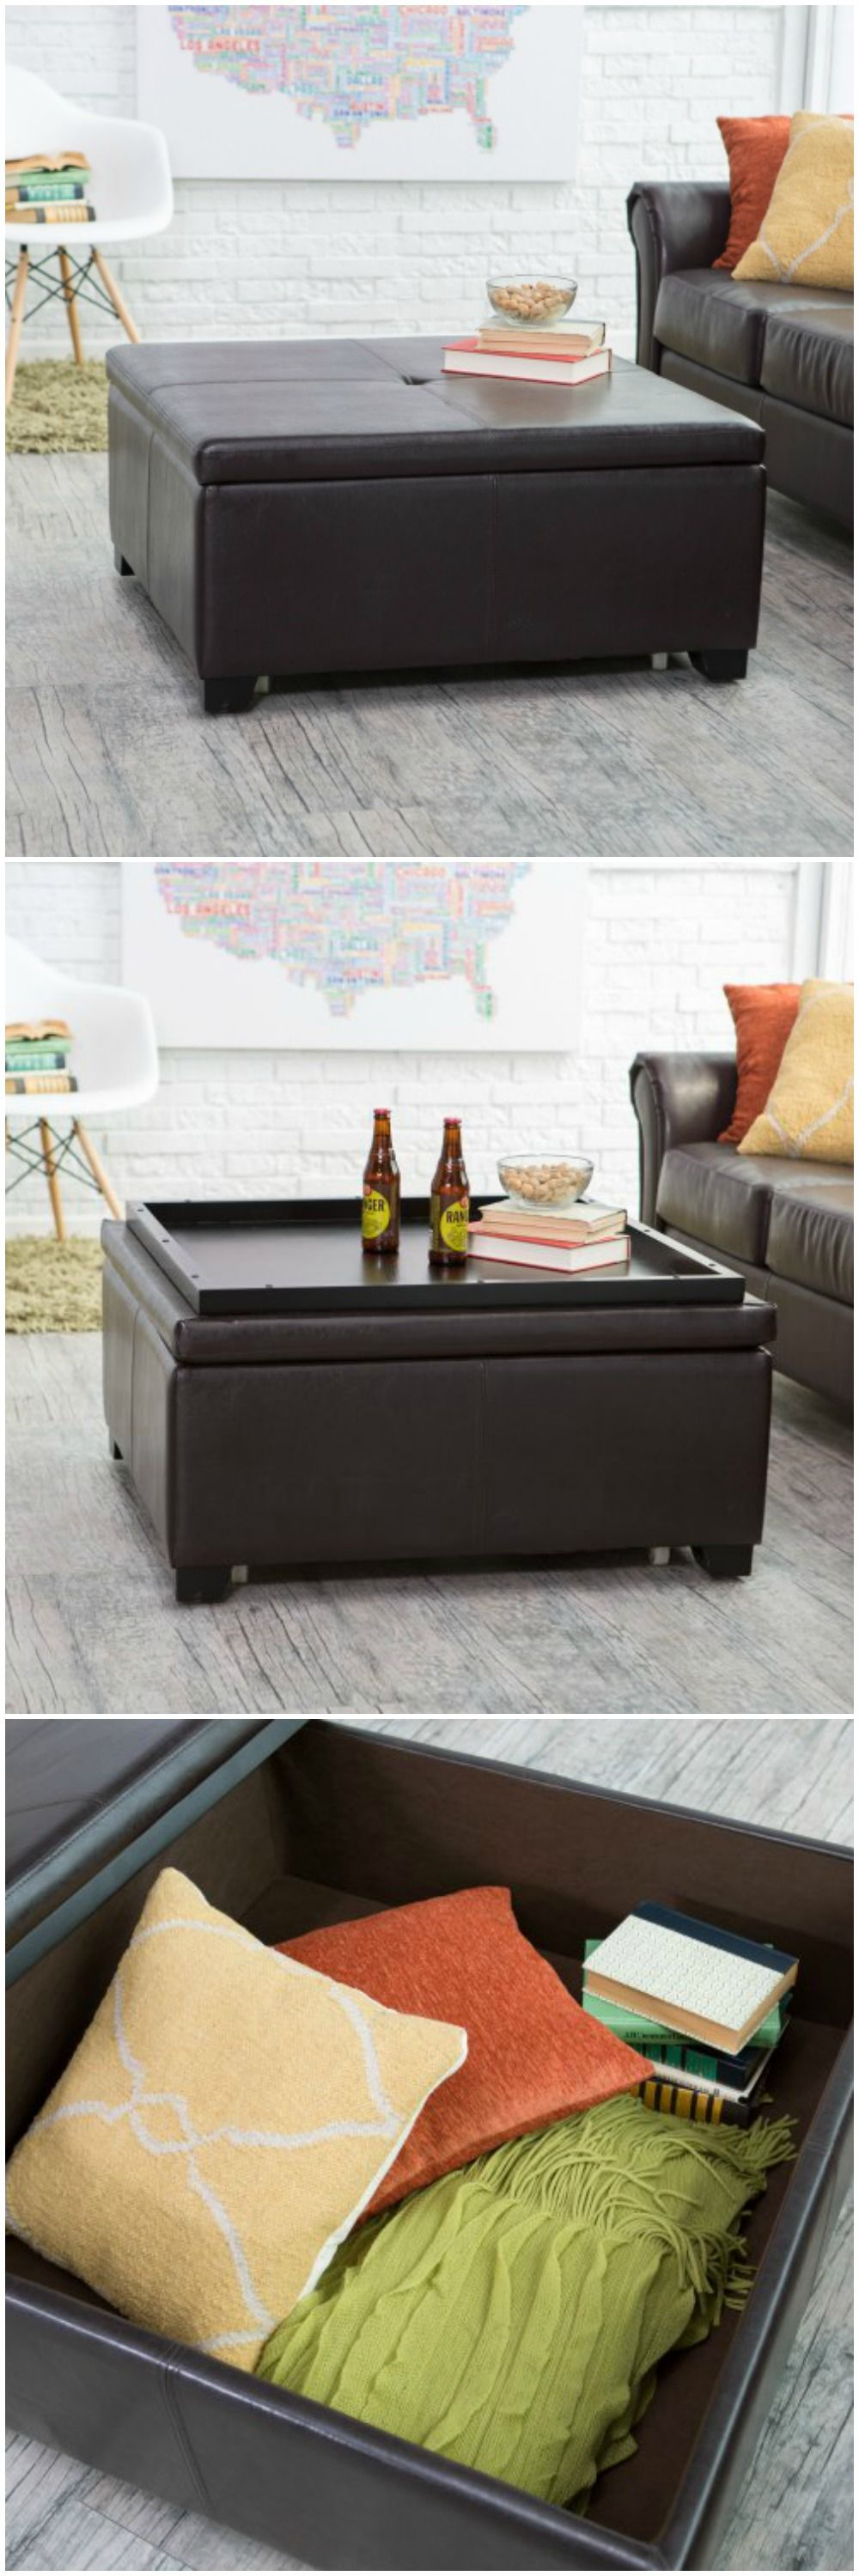 Ottoman Coffee Table Storage 35x35x16 Ottoman In Living Room